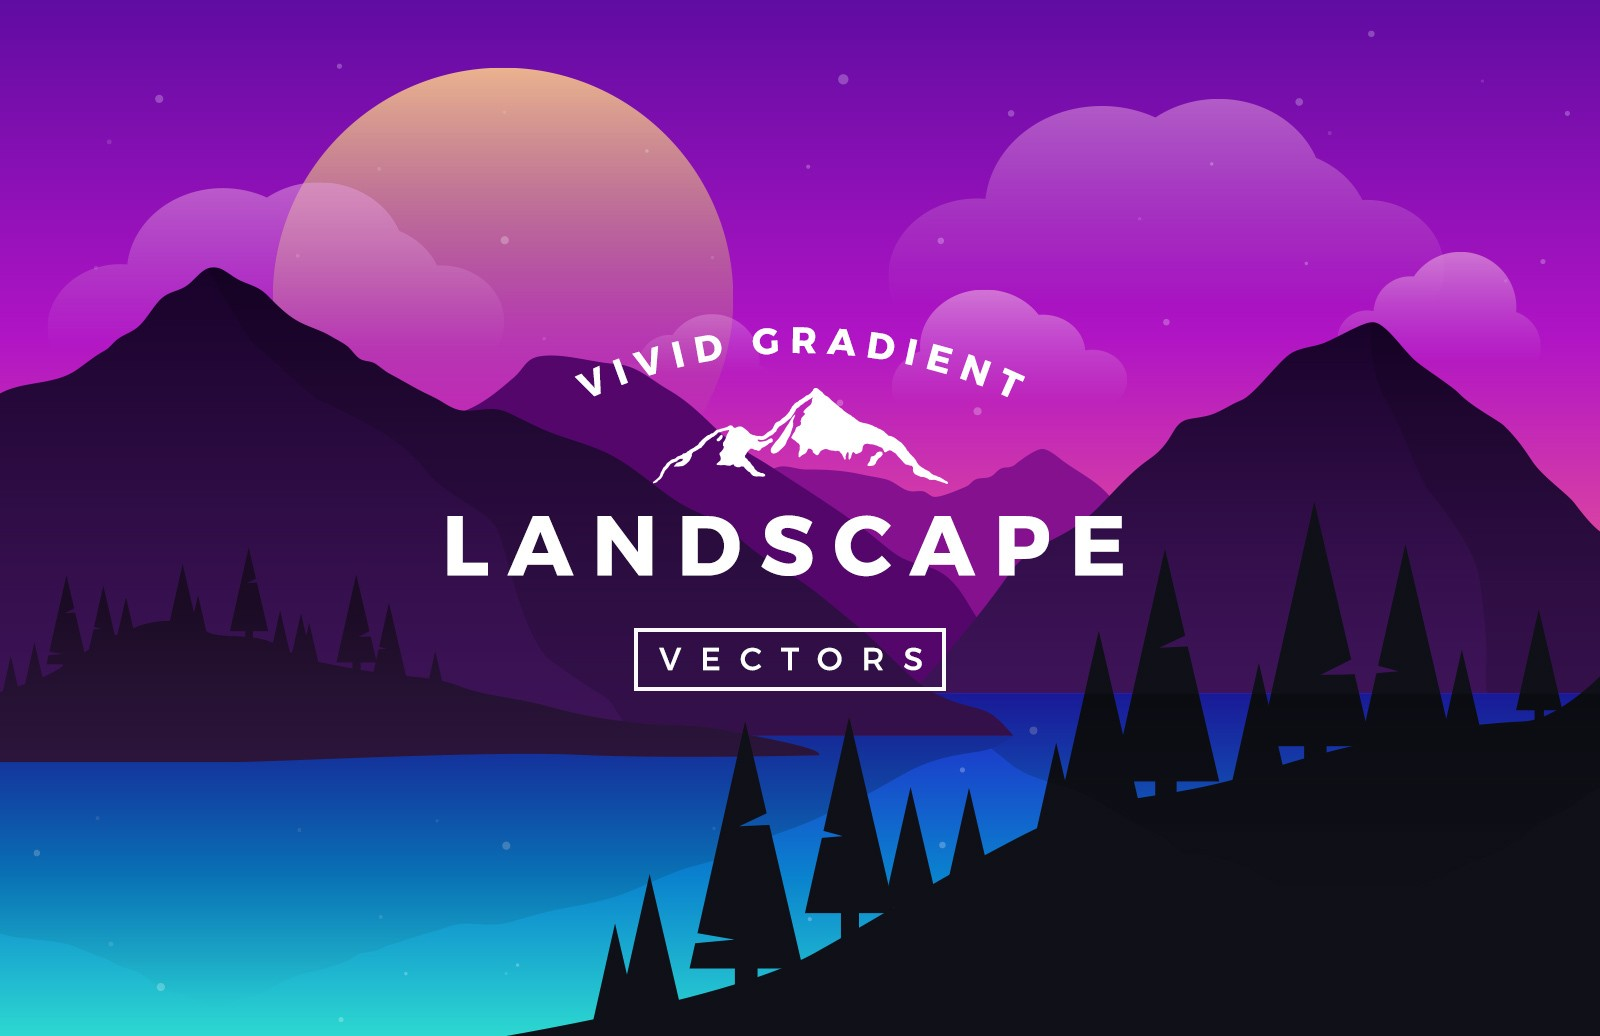 Vivid Gradient Landscape Vectors Preview 1